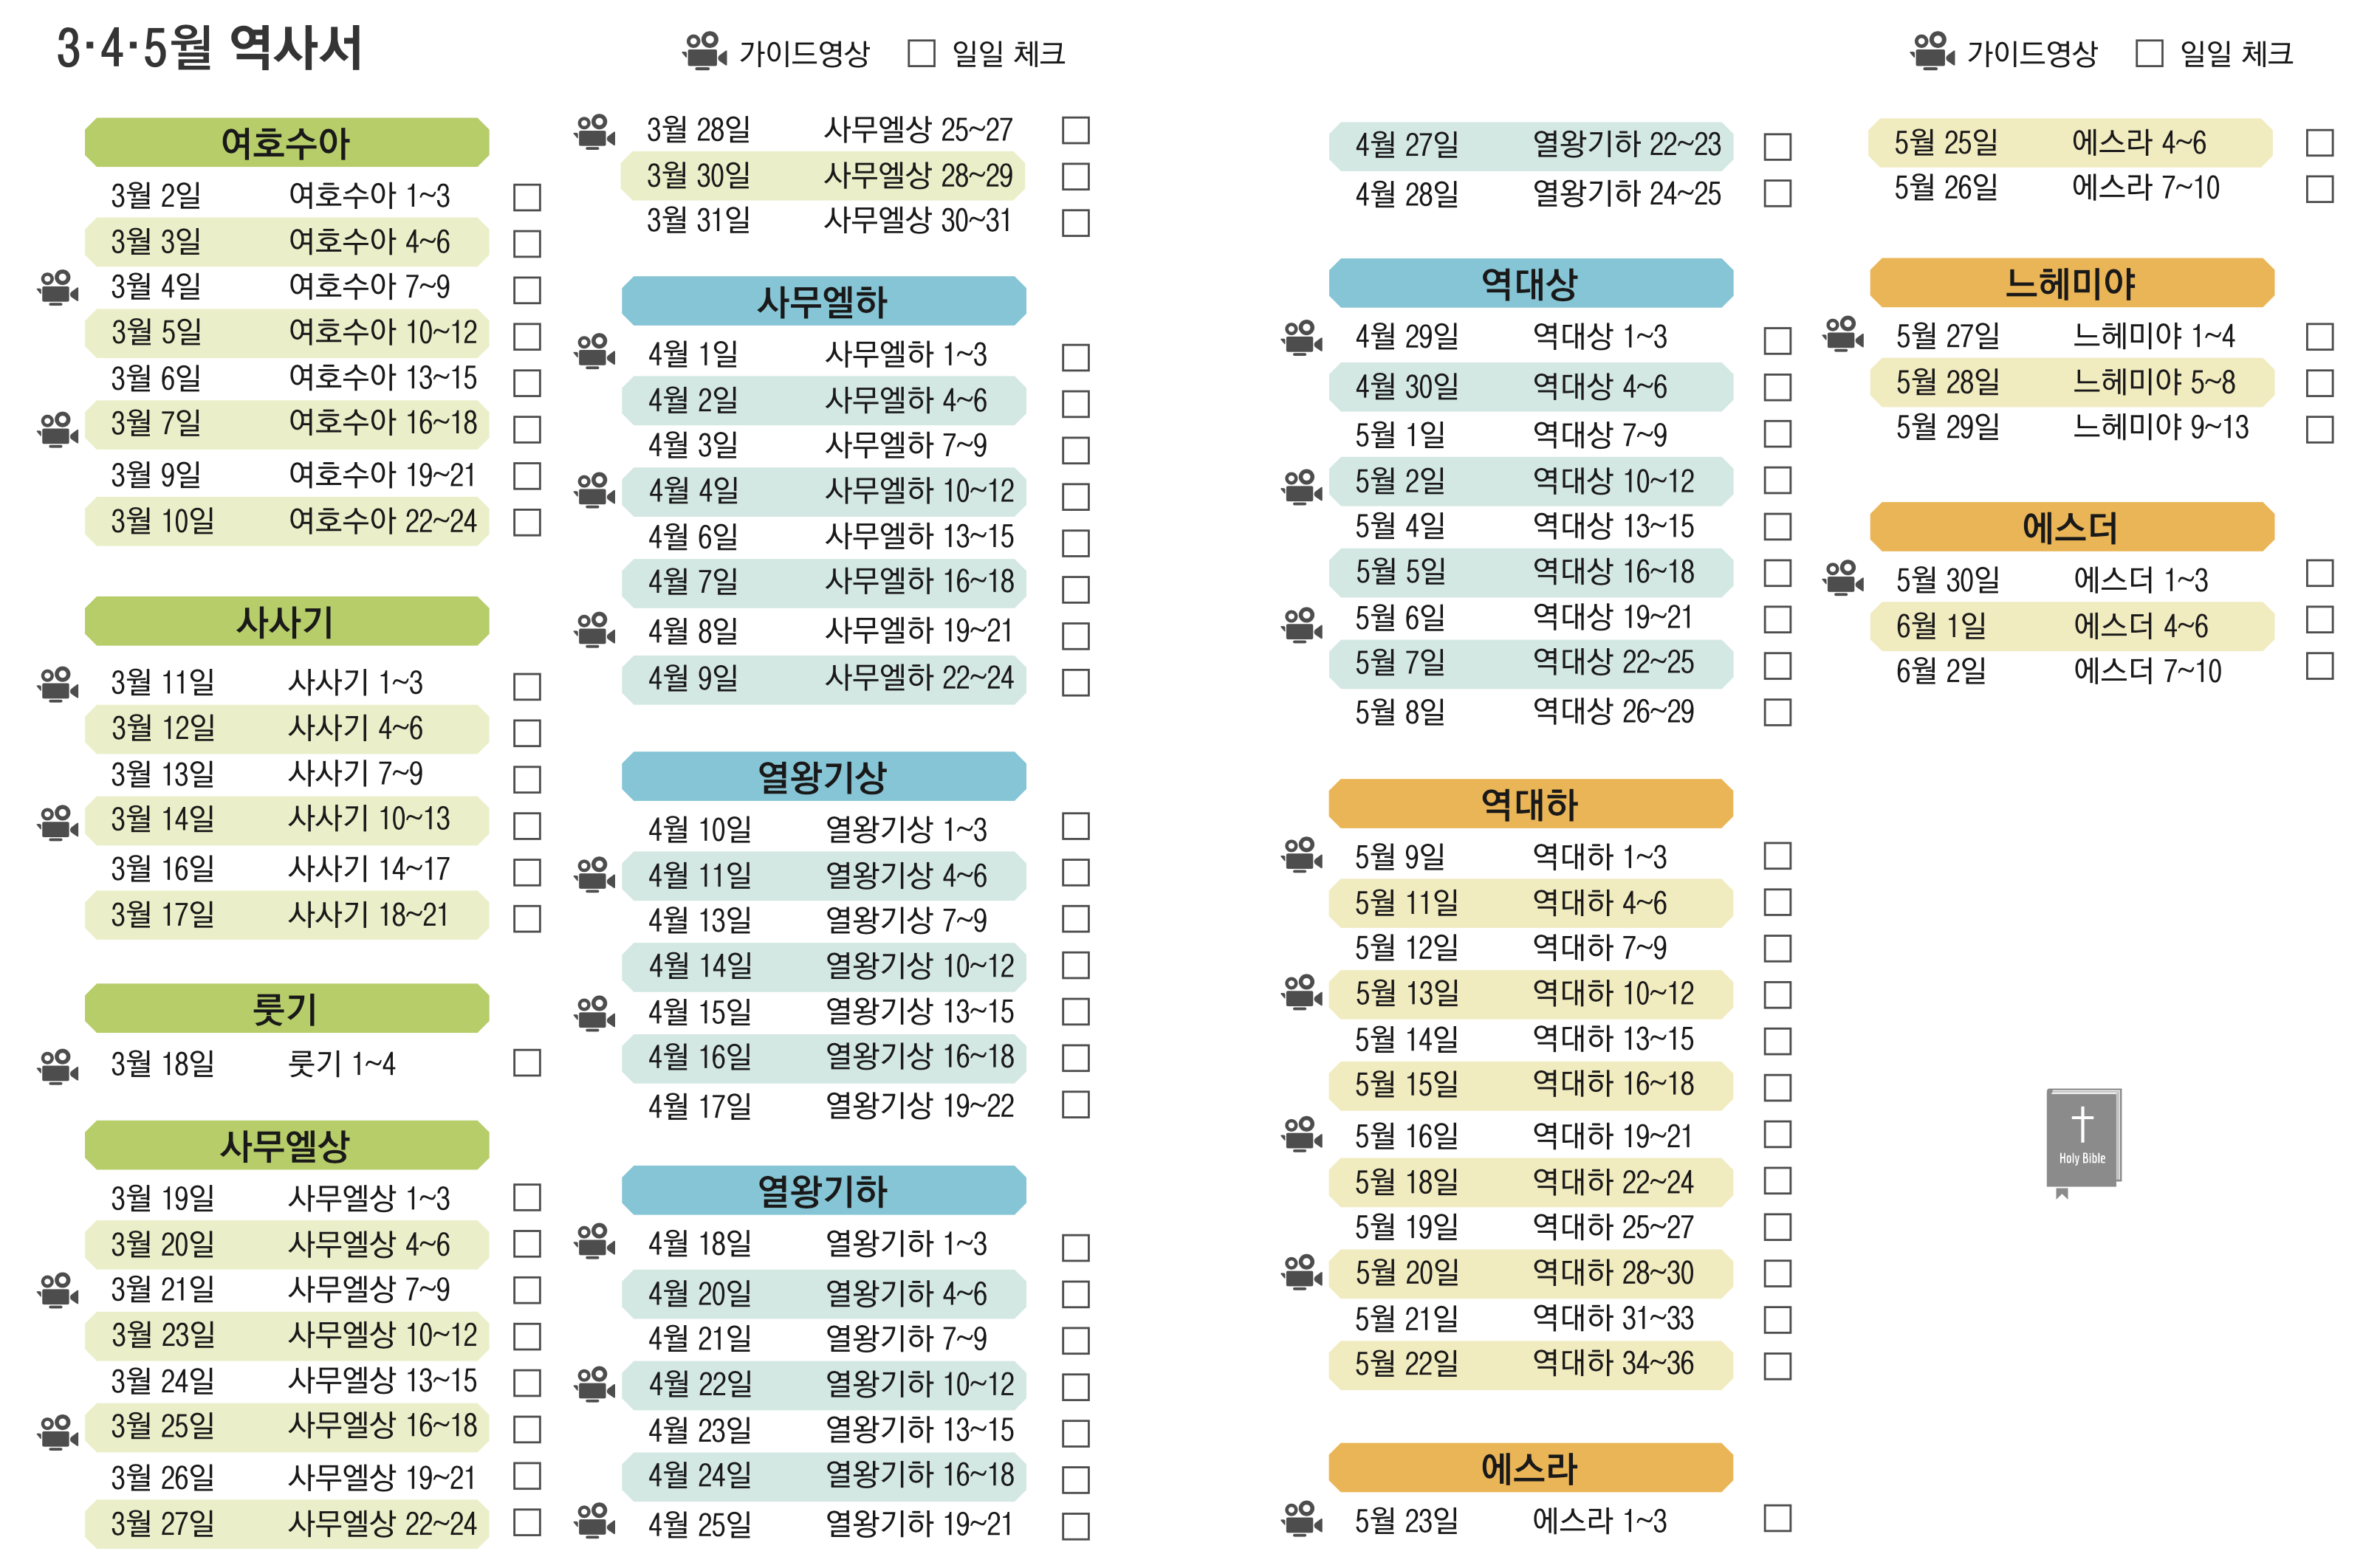 2020-mar-apr-may-bible-schedule.png